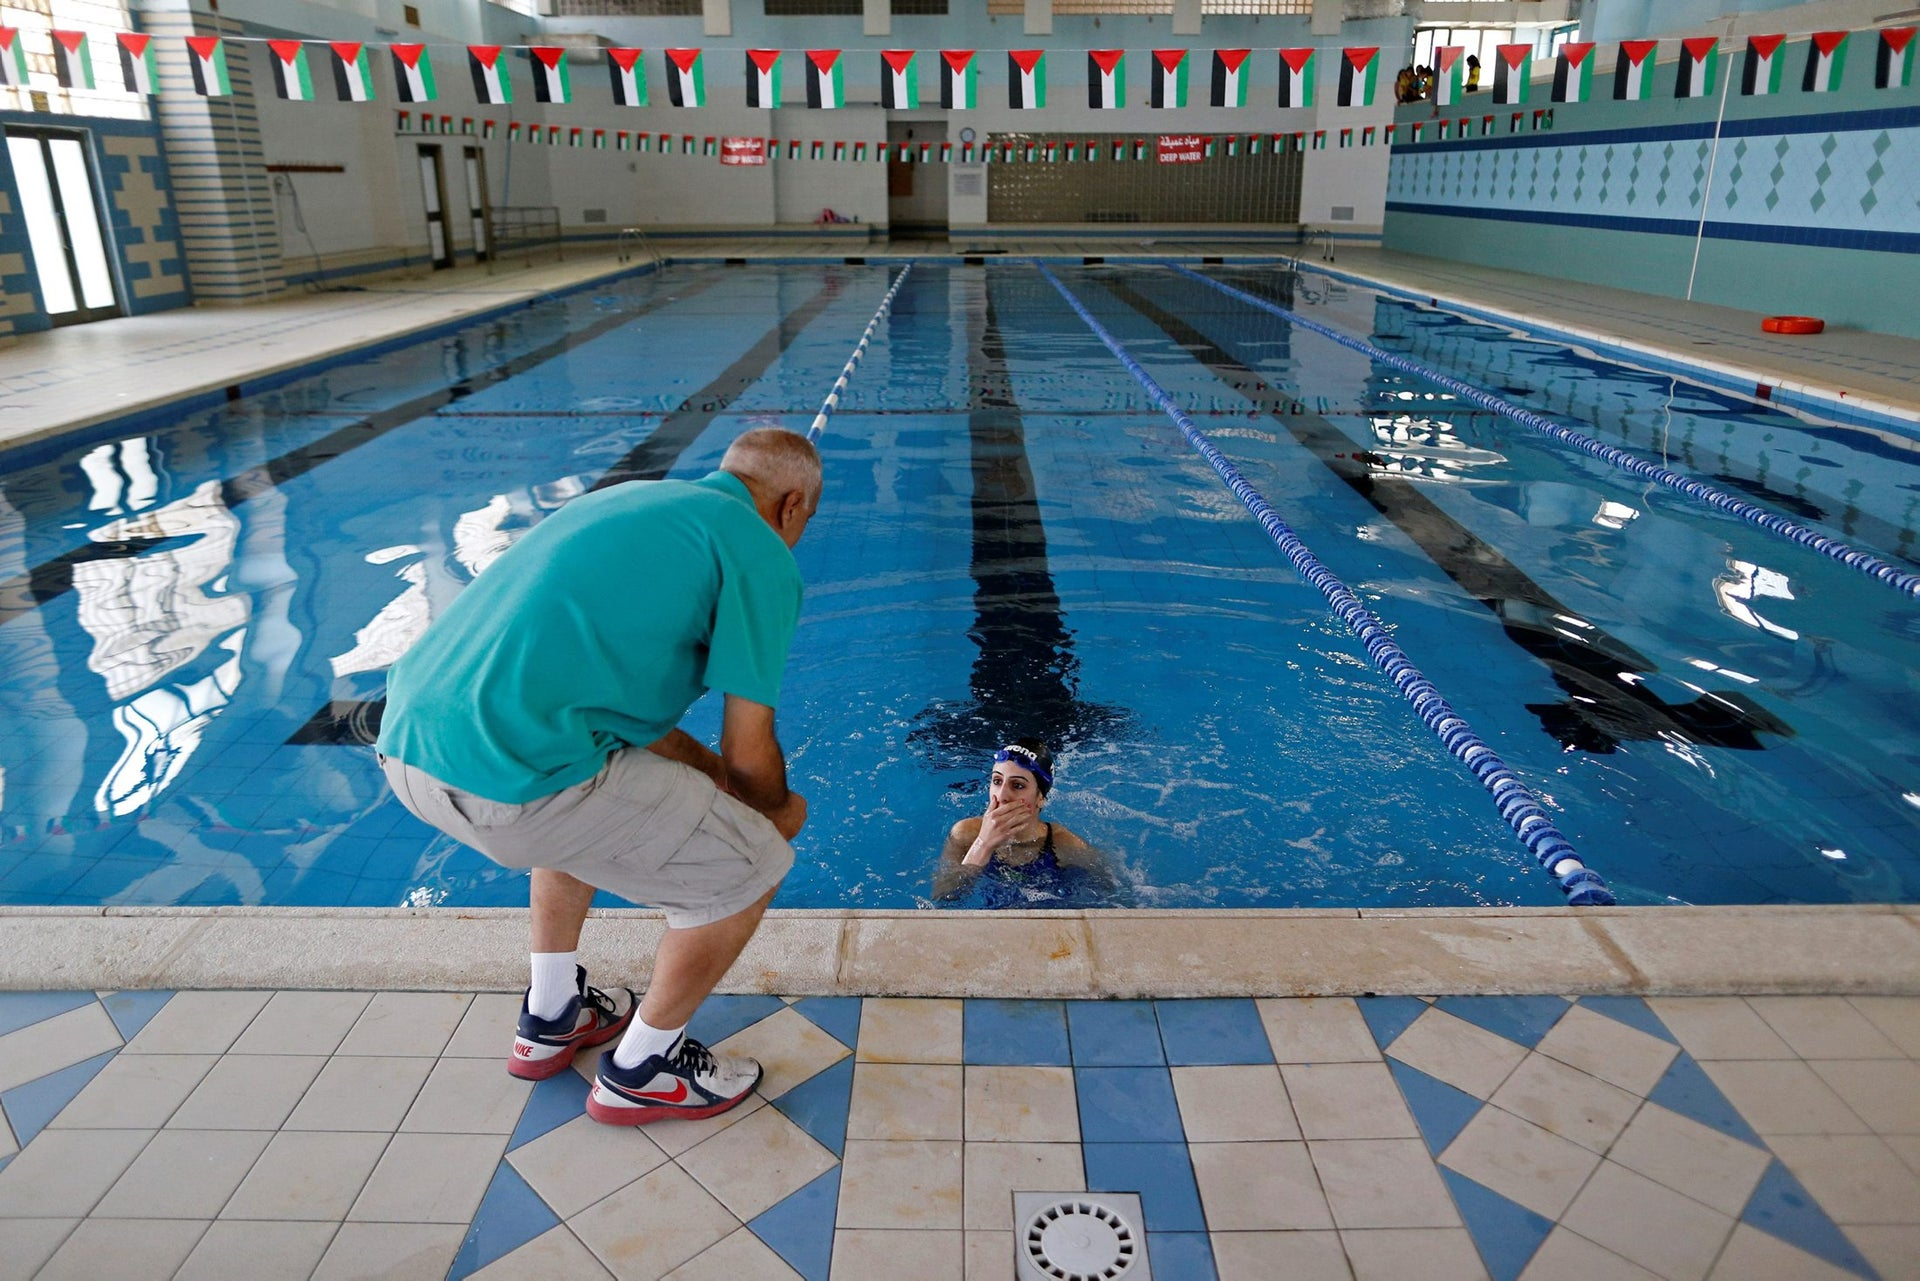 Palestinian swimmer Mary Al-Atrash, 22, who will represent Palestine at the 2016 Rio Olympics, speaks with her father as she trains in a swimming pool in Beit Sahour, near the West Bank town of Bethlehem, June 27, 2016.